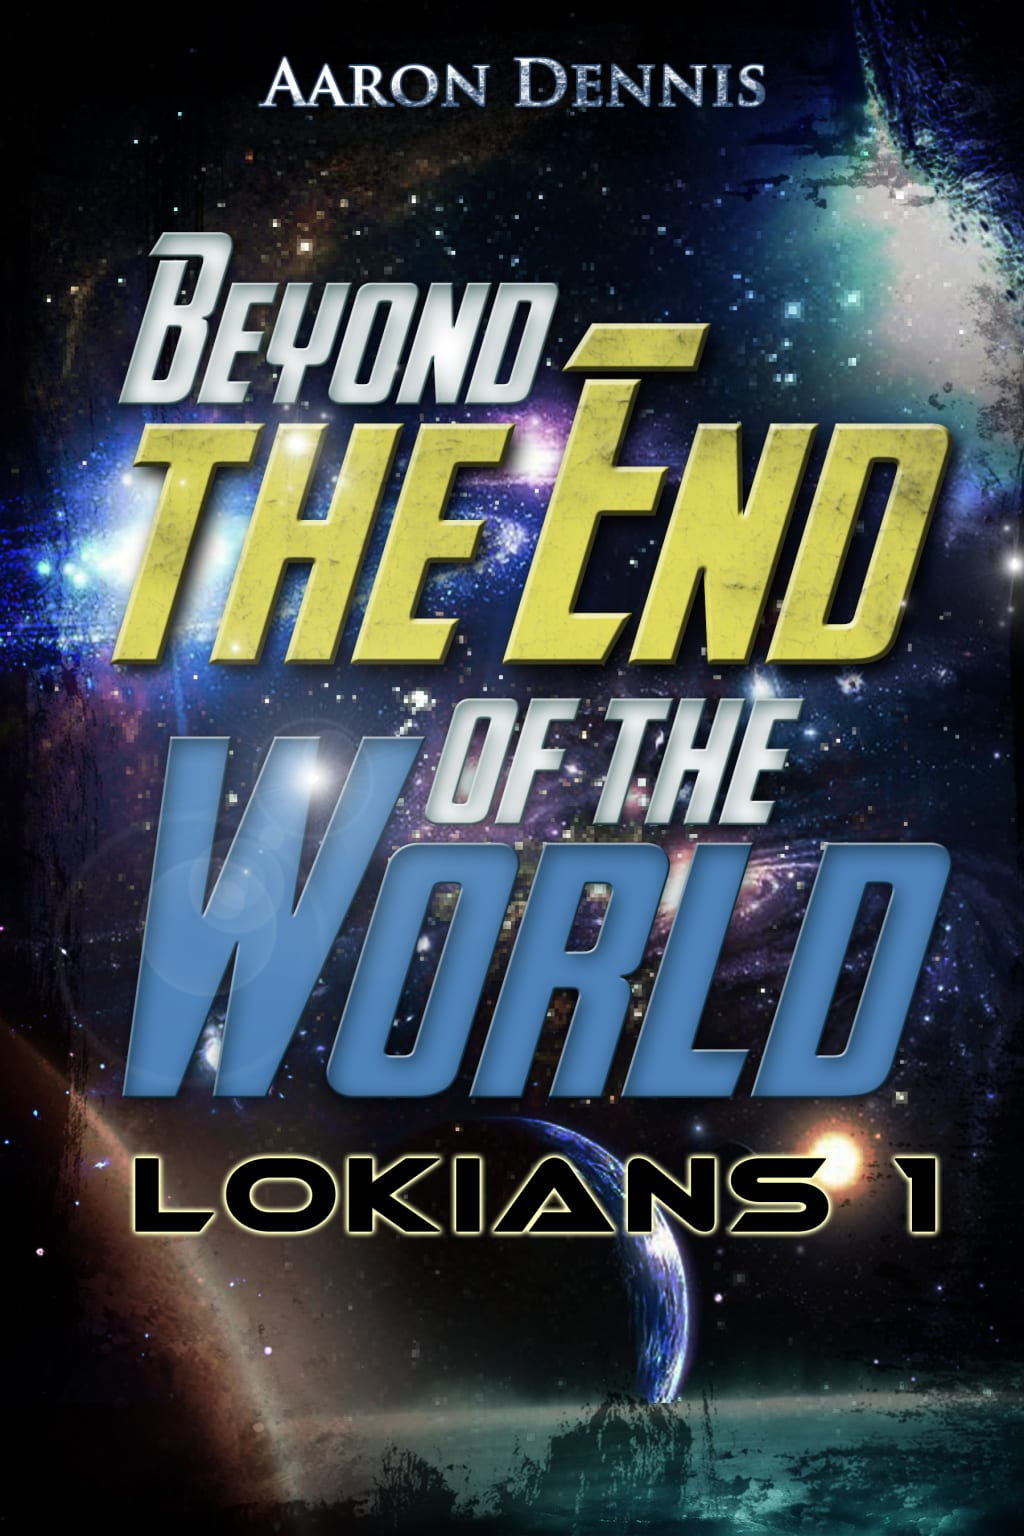 Part 8 of Beyond the End of the World, Lokians 1